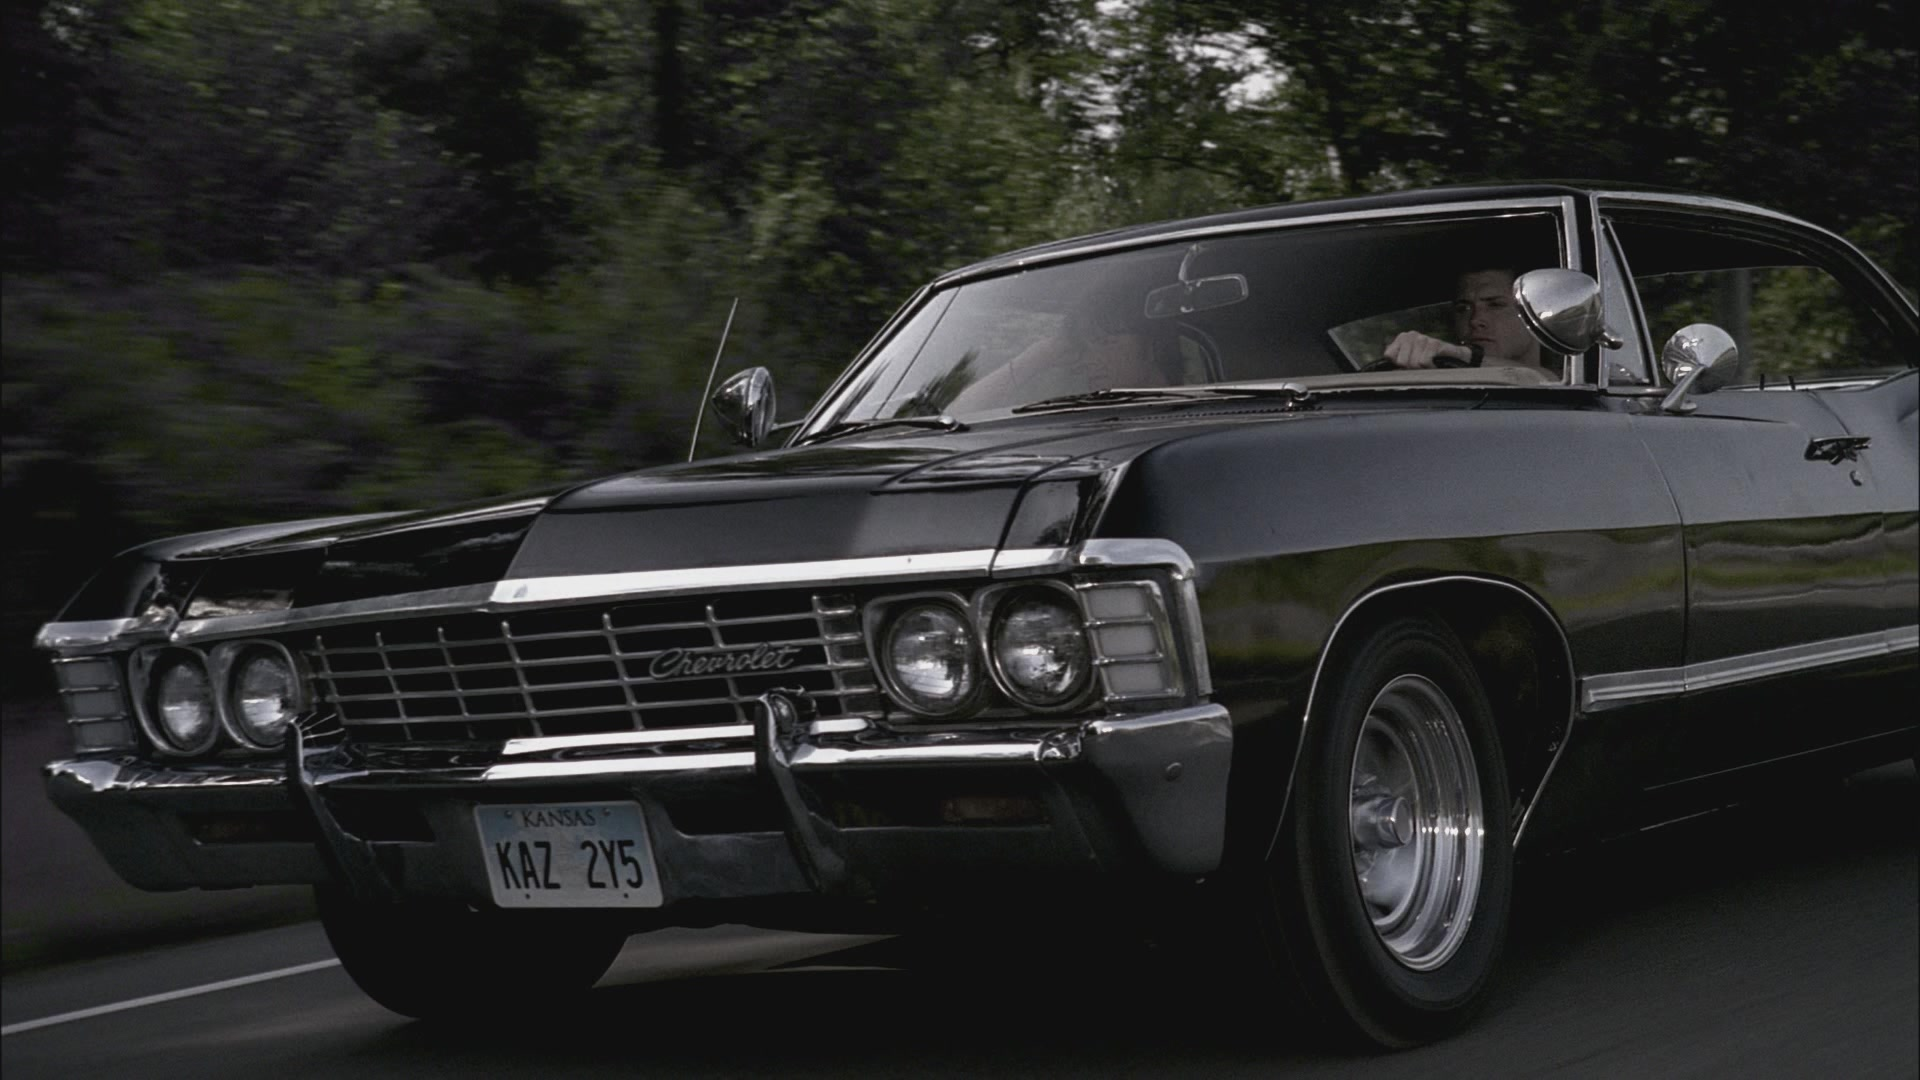 supernatural car impala wallpaper - photo #11